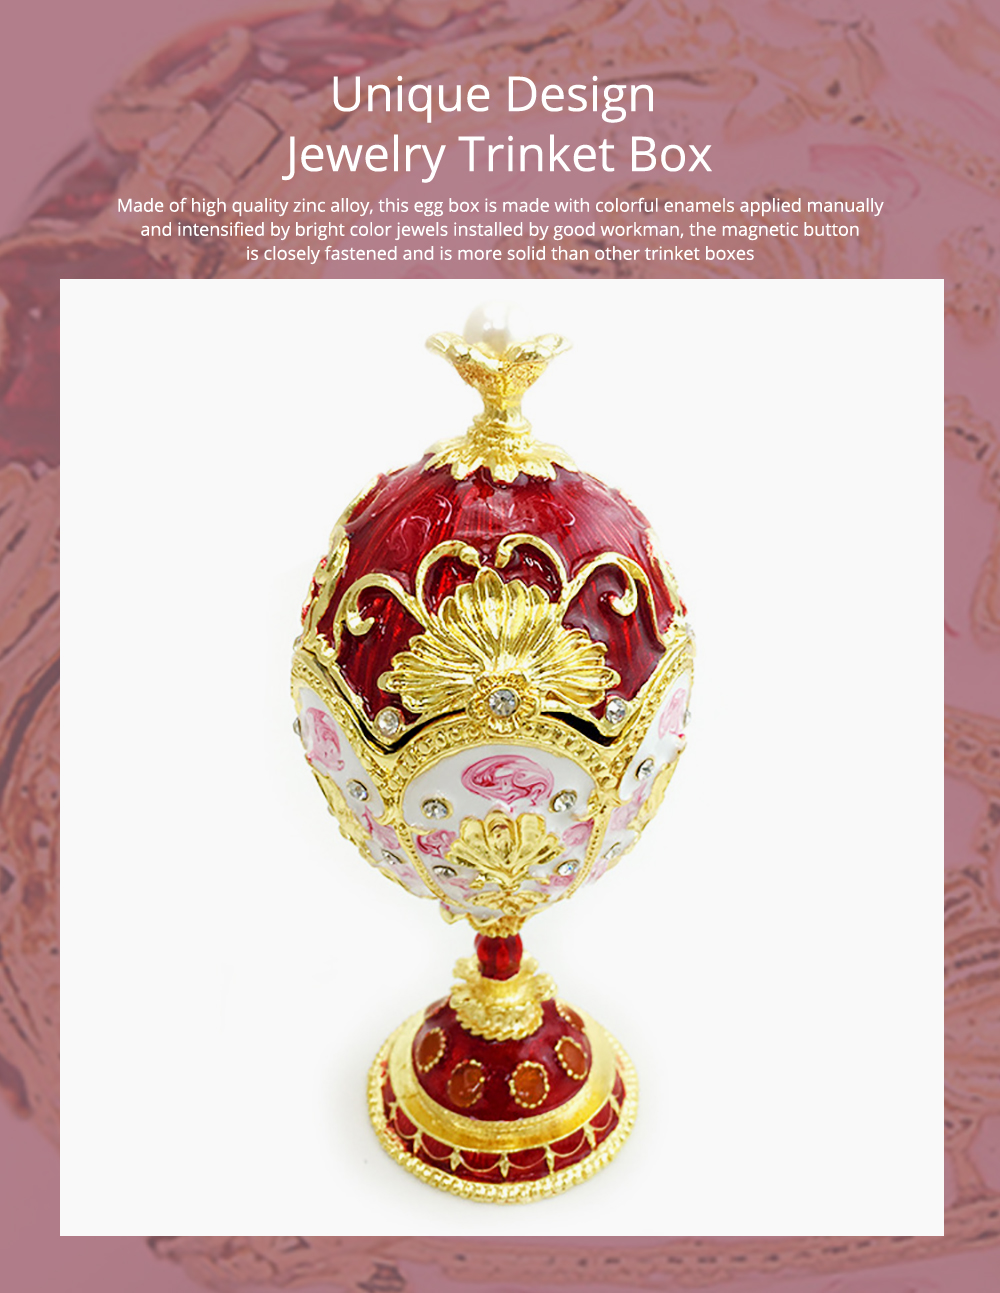 Unique Design Jewelry Trinket Box with Rich Enamel and Sparkling Rhinestones Perfect to Store Jewelry Luxurious Gift for Home Decor 0